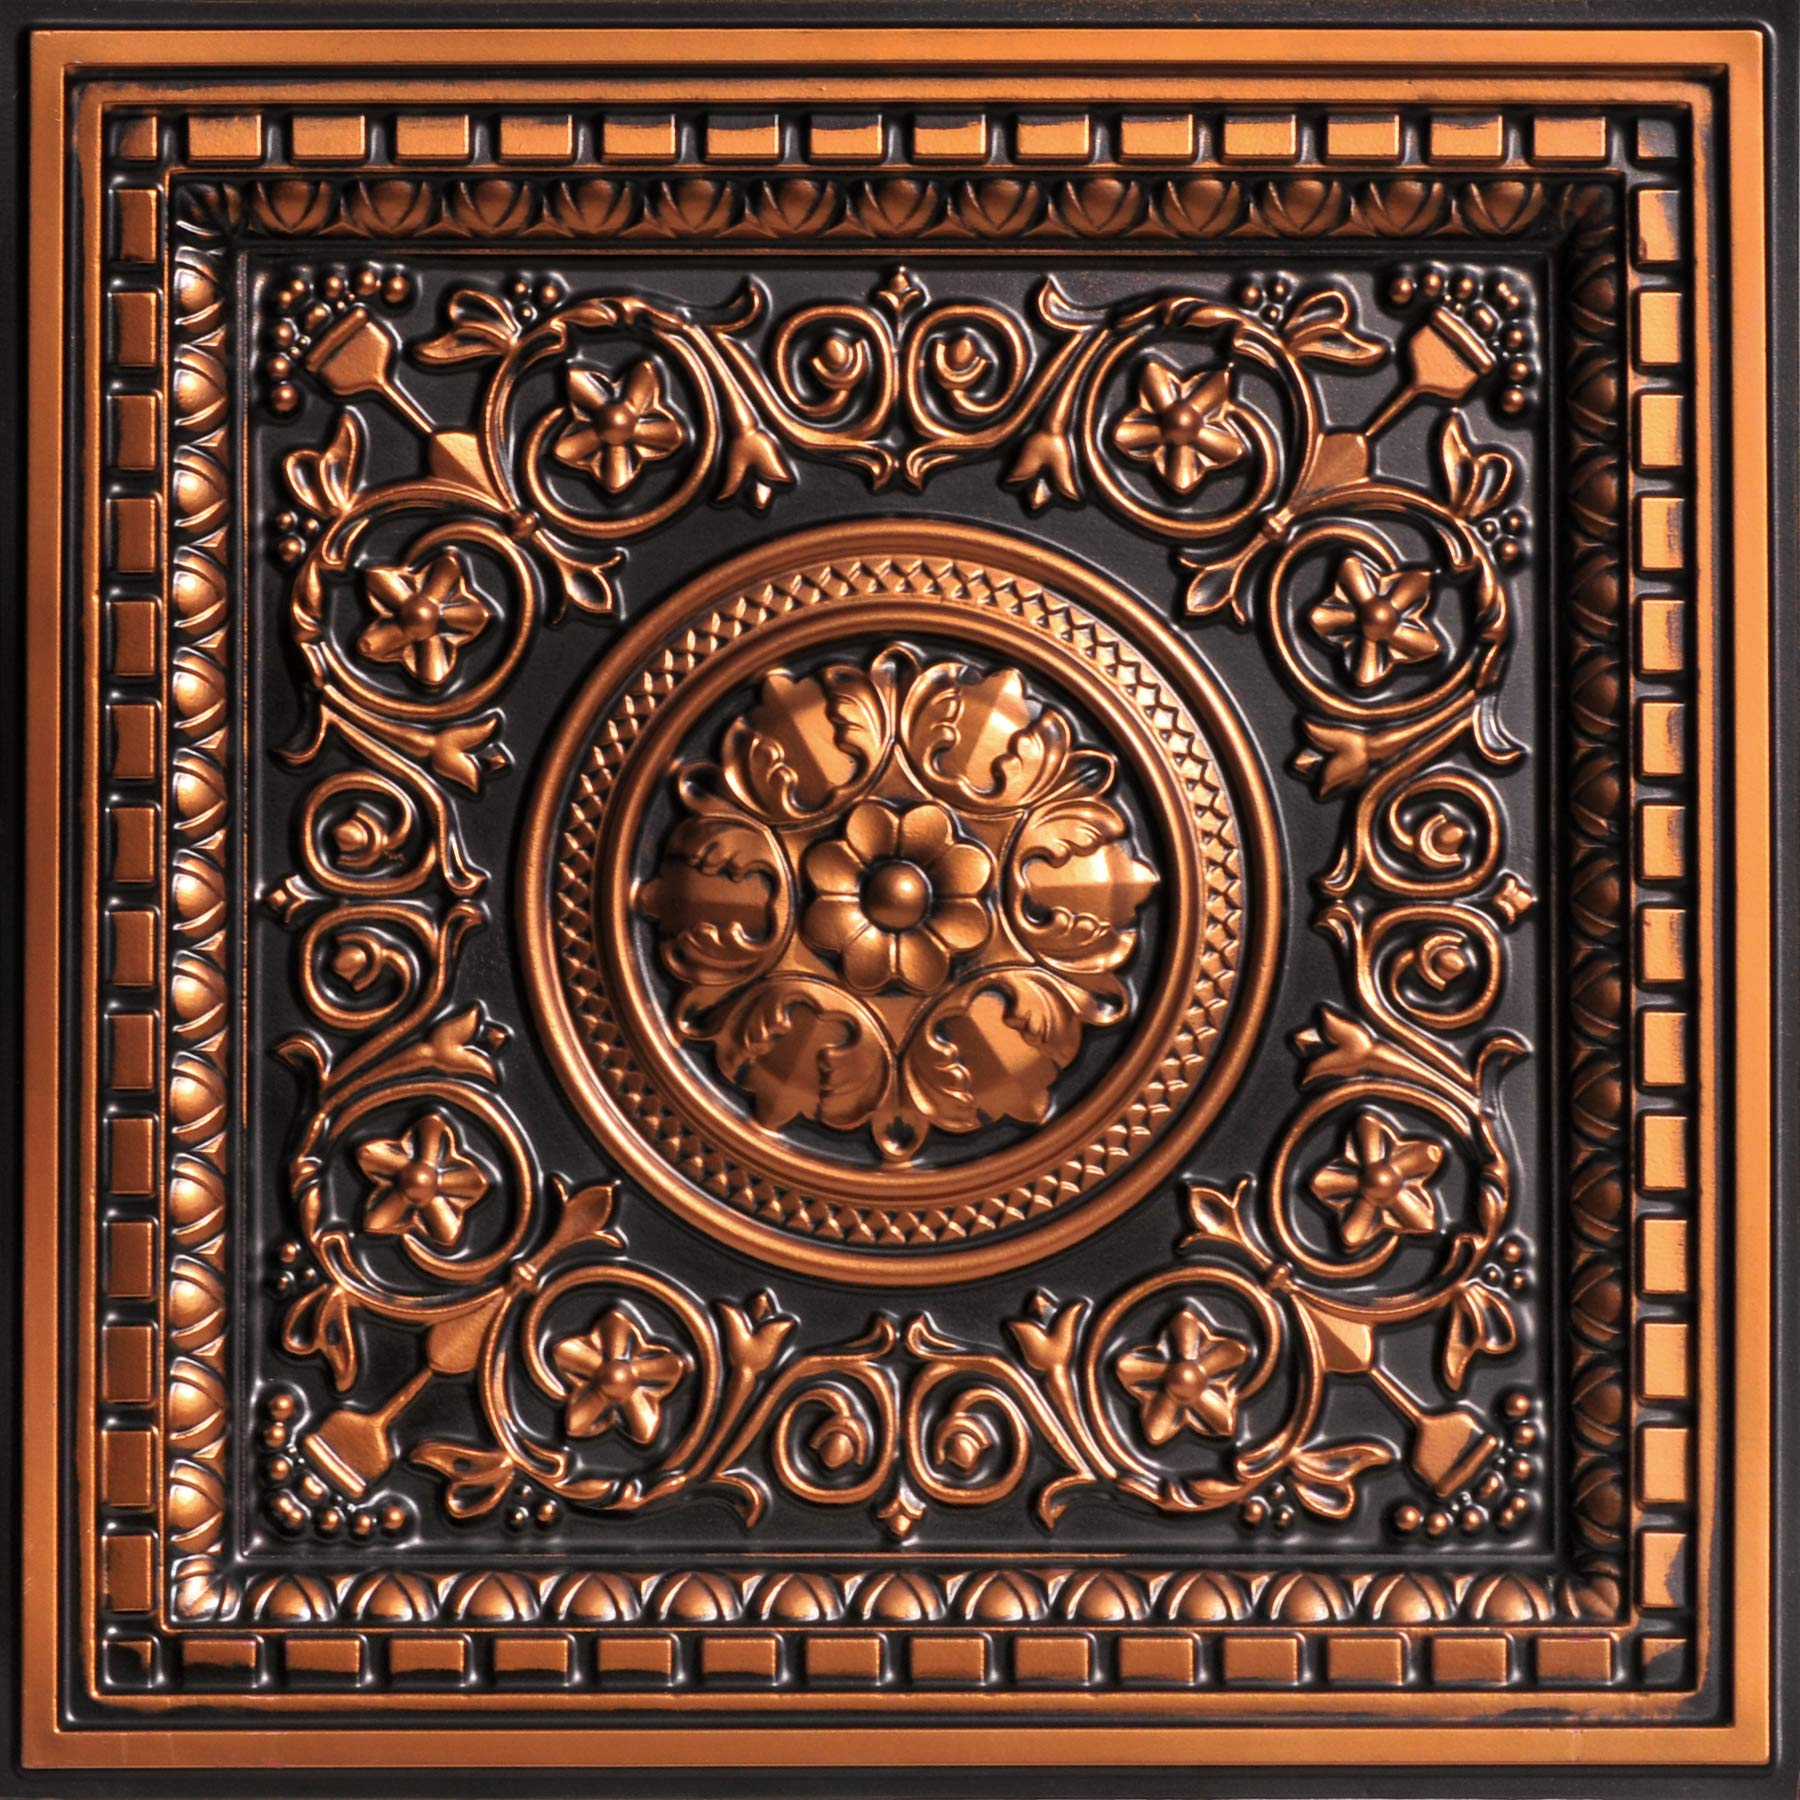 From Plain To Beautiful In Hours VC02ac-24x24-25 Rhine Valley Ceiling Tile Antique Copper 25